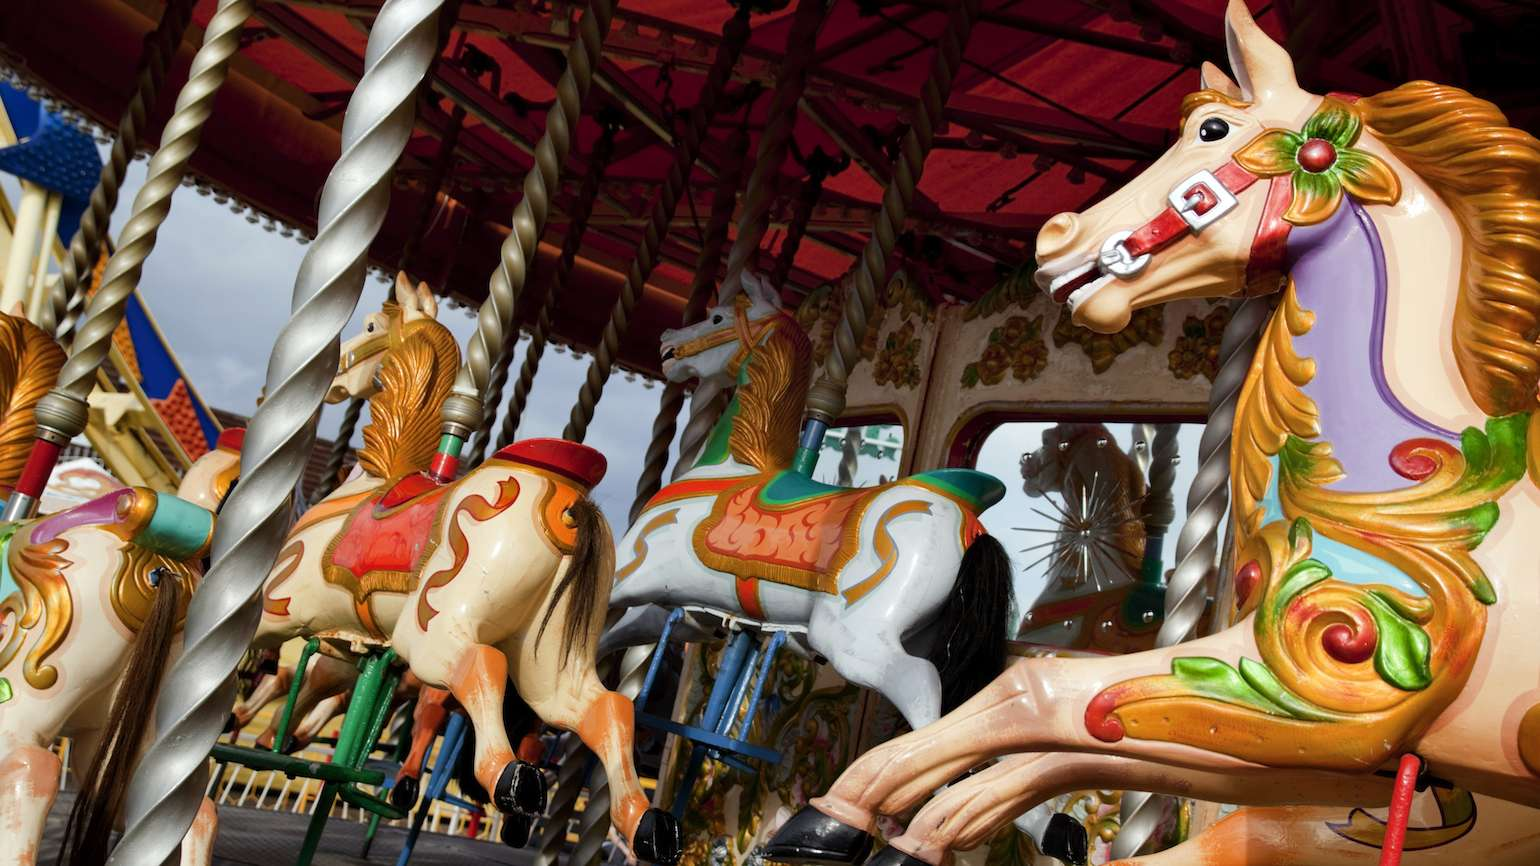 How to get off the stress merry-go-round.